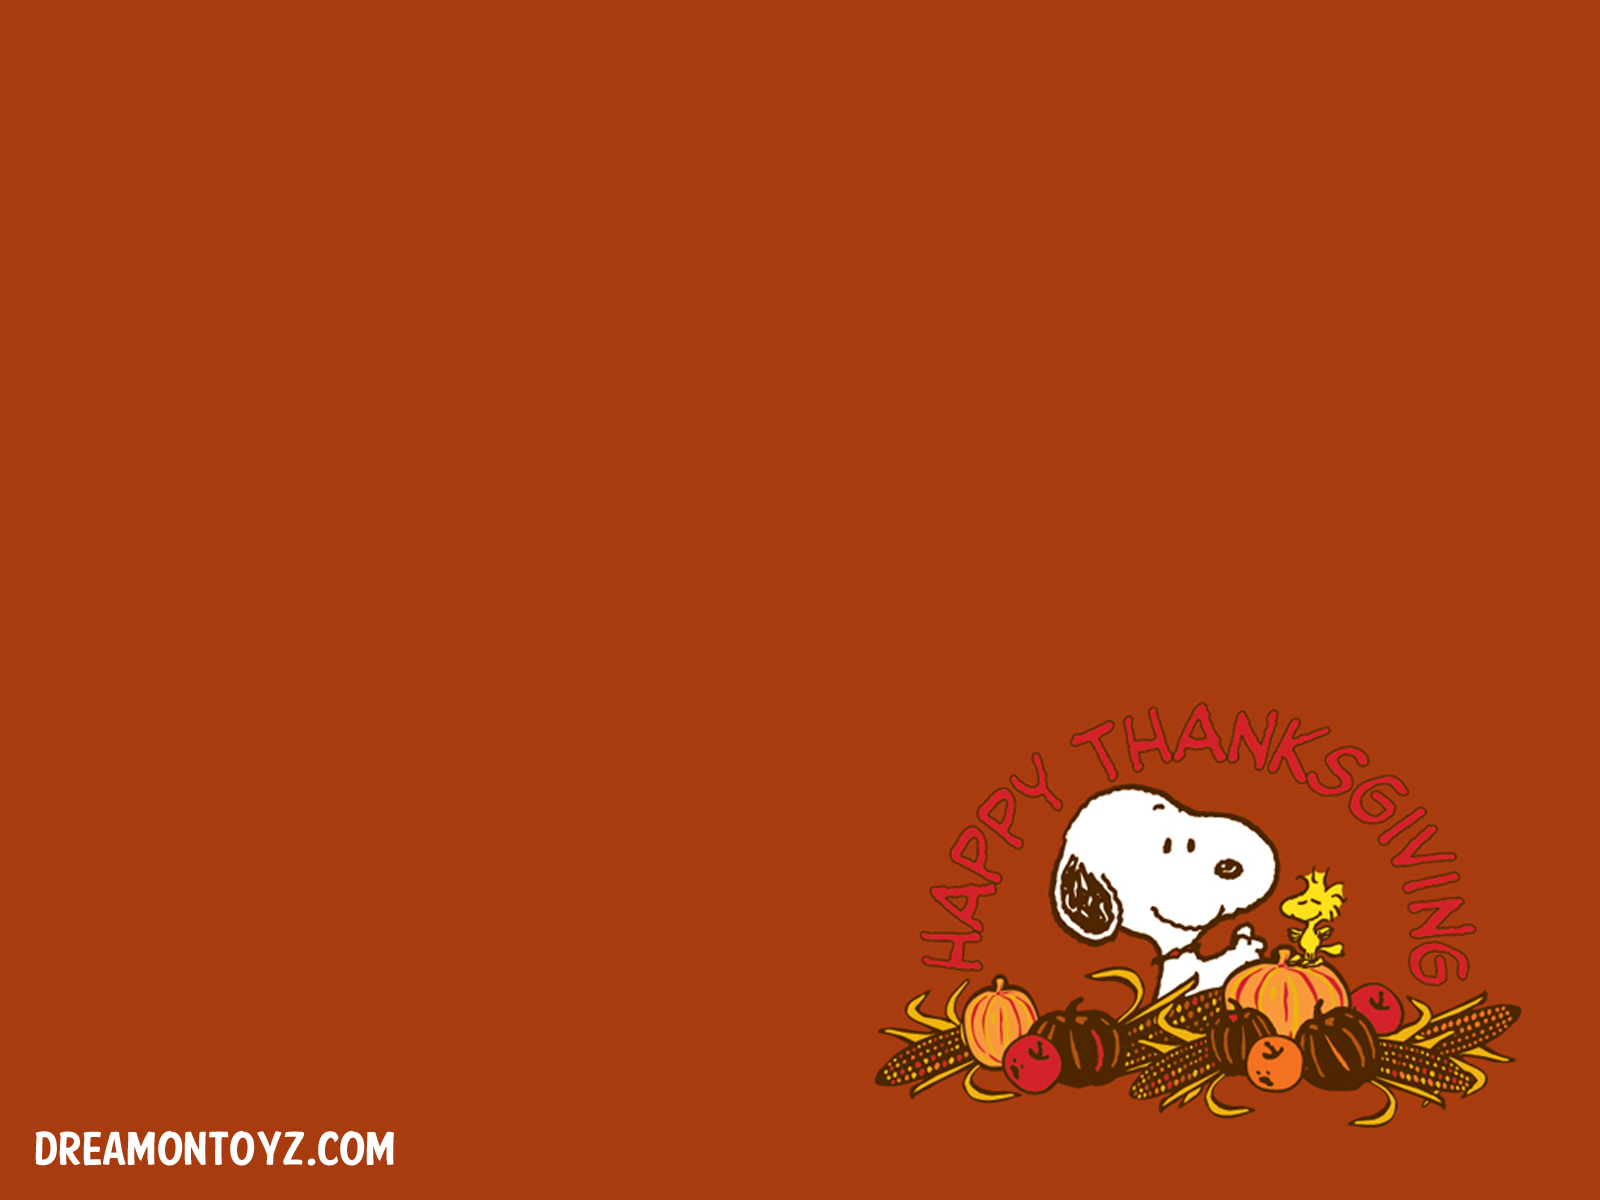 Pics Gifs Photographs Peanuts Snoopy Thanksgiving wallpapers 1600x1200